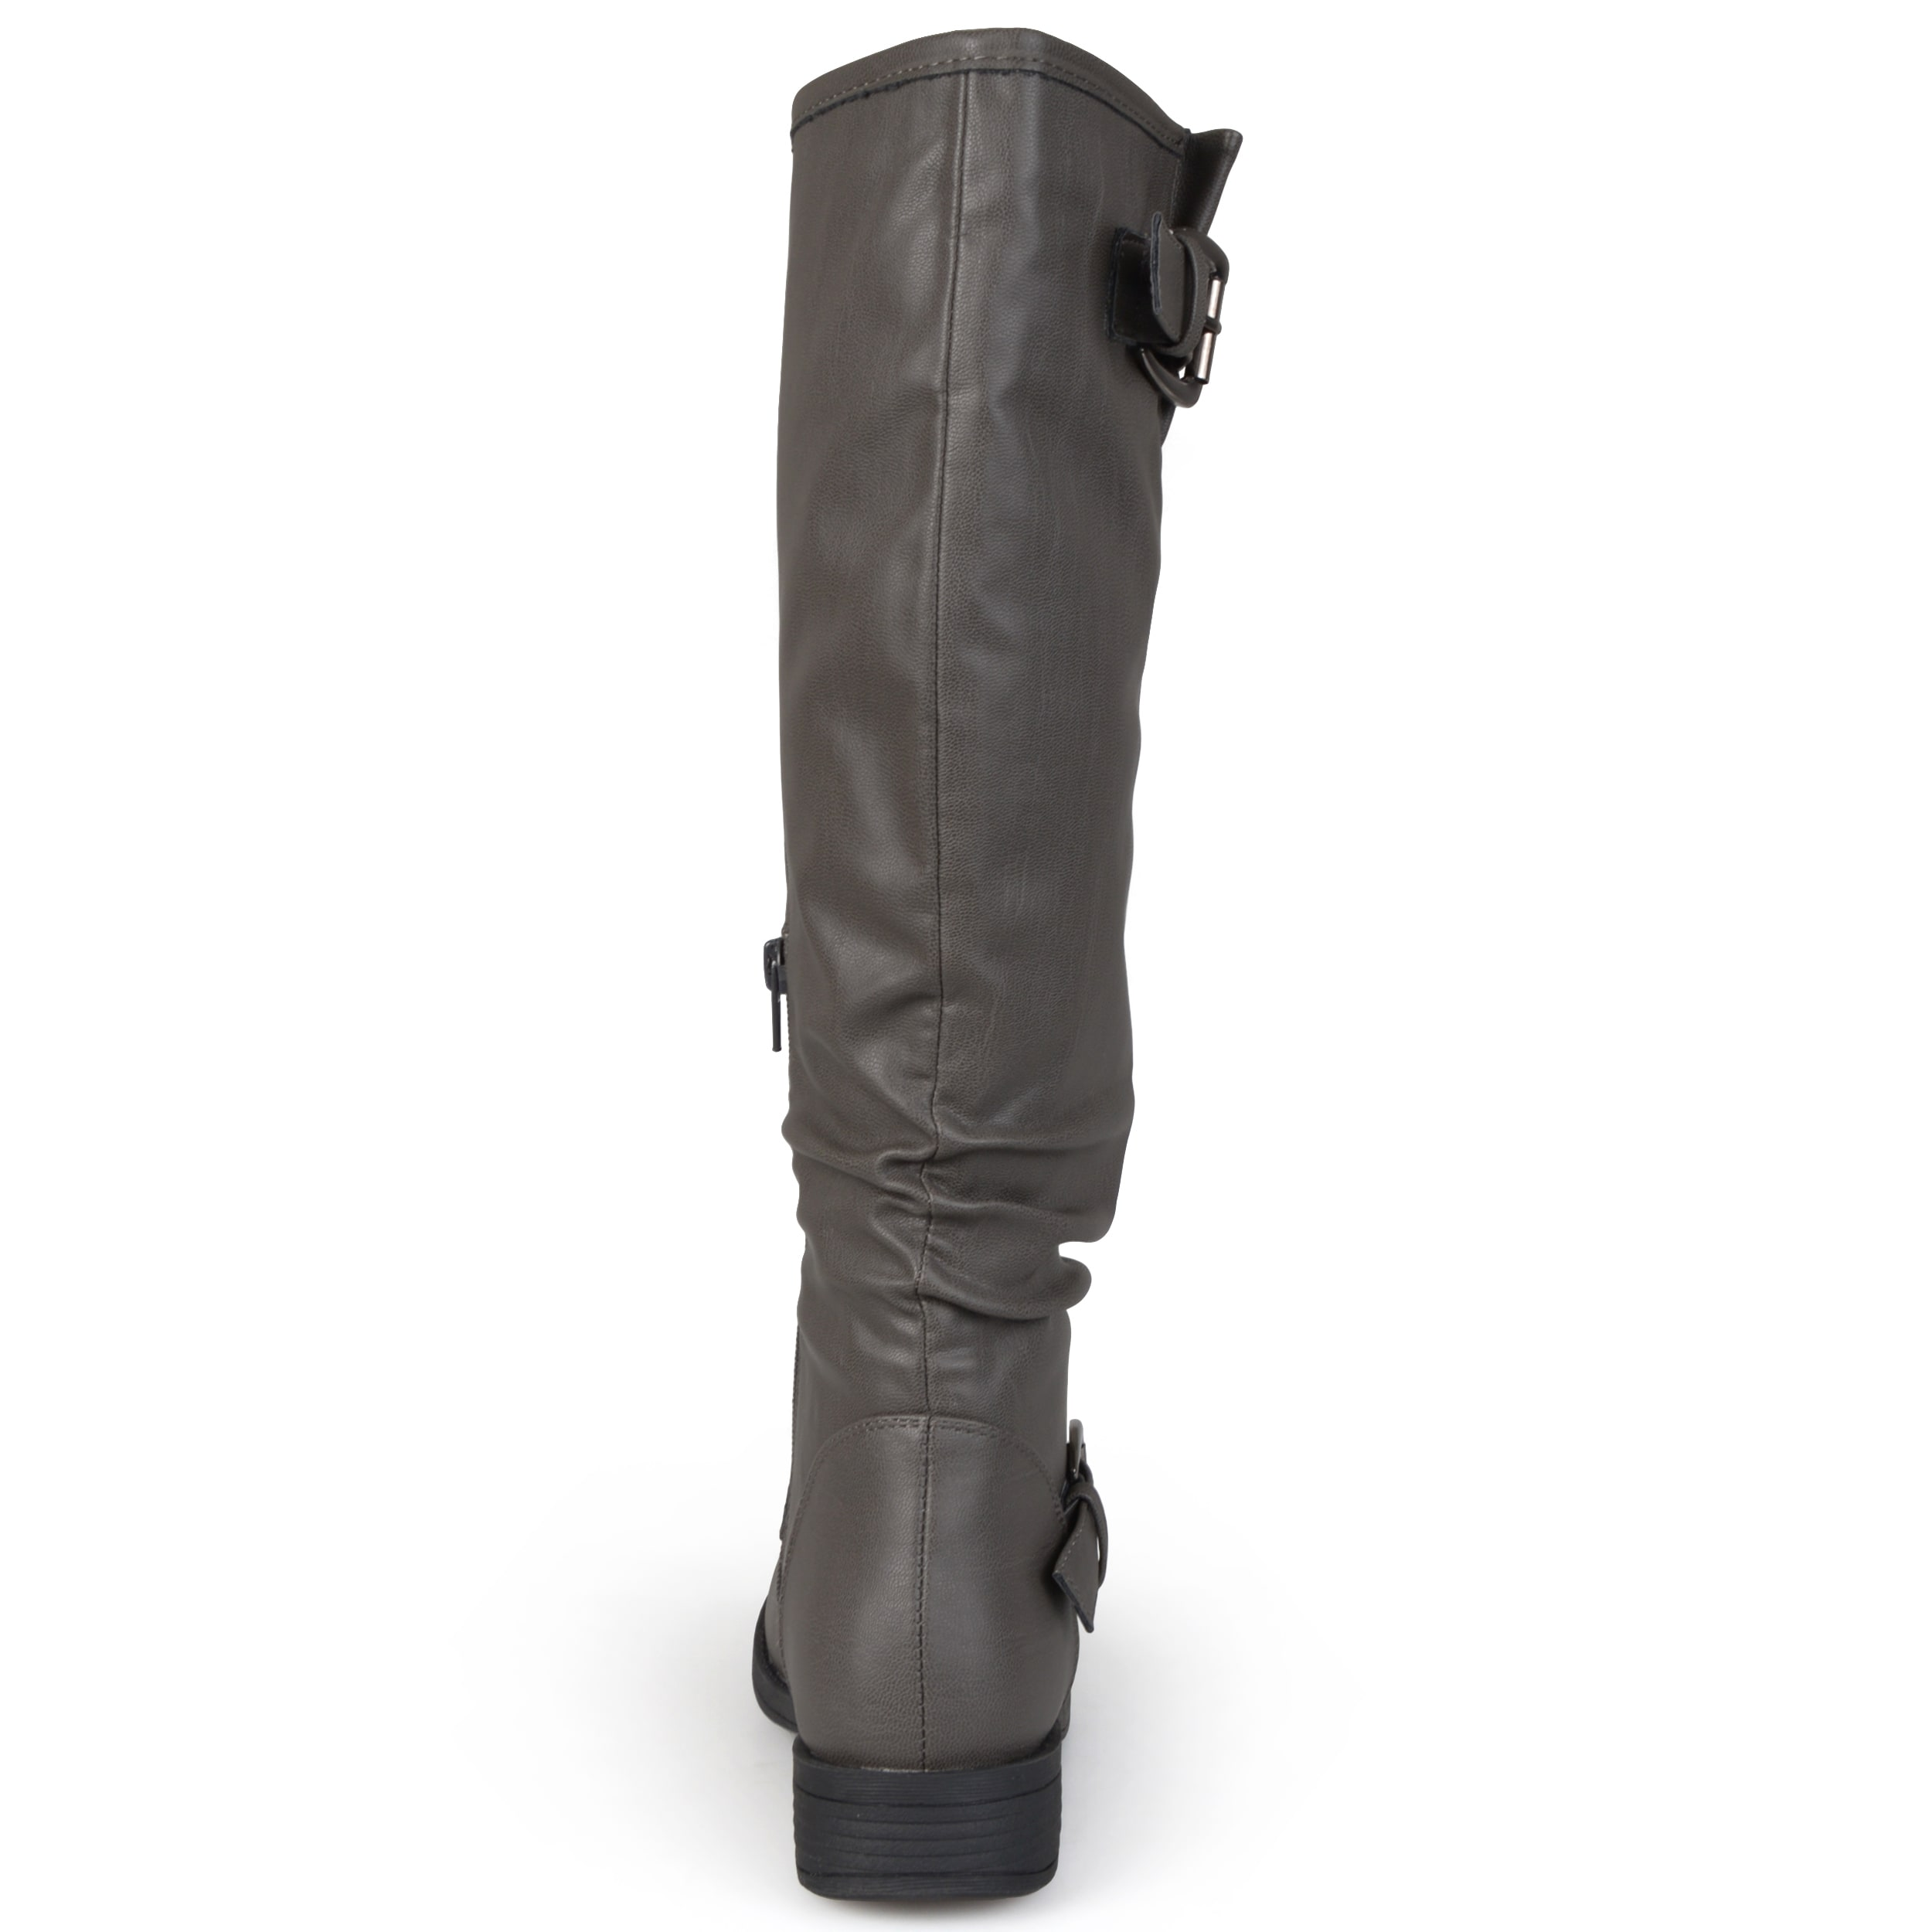 741371b8d8f5 Shop Journee Collection Women s Extra Wide-Calf  Stormy  Knee-High Buckle Riding  Boot - On Sale - Free Shipping Today - Overstock - 12060793